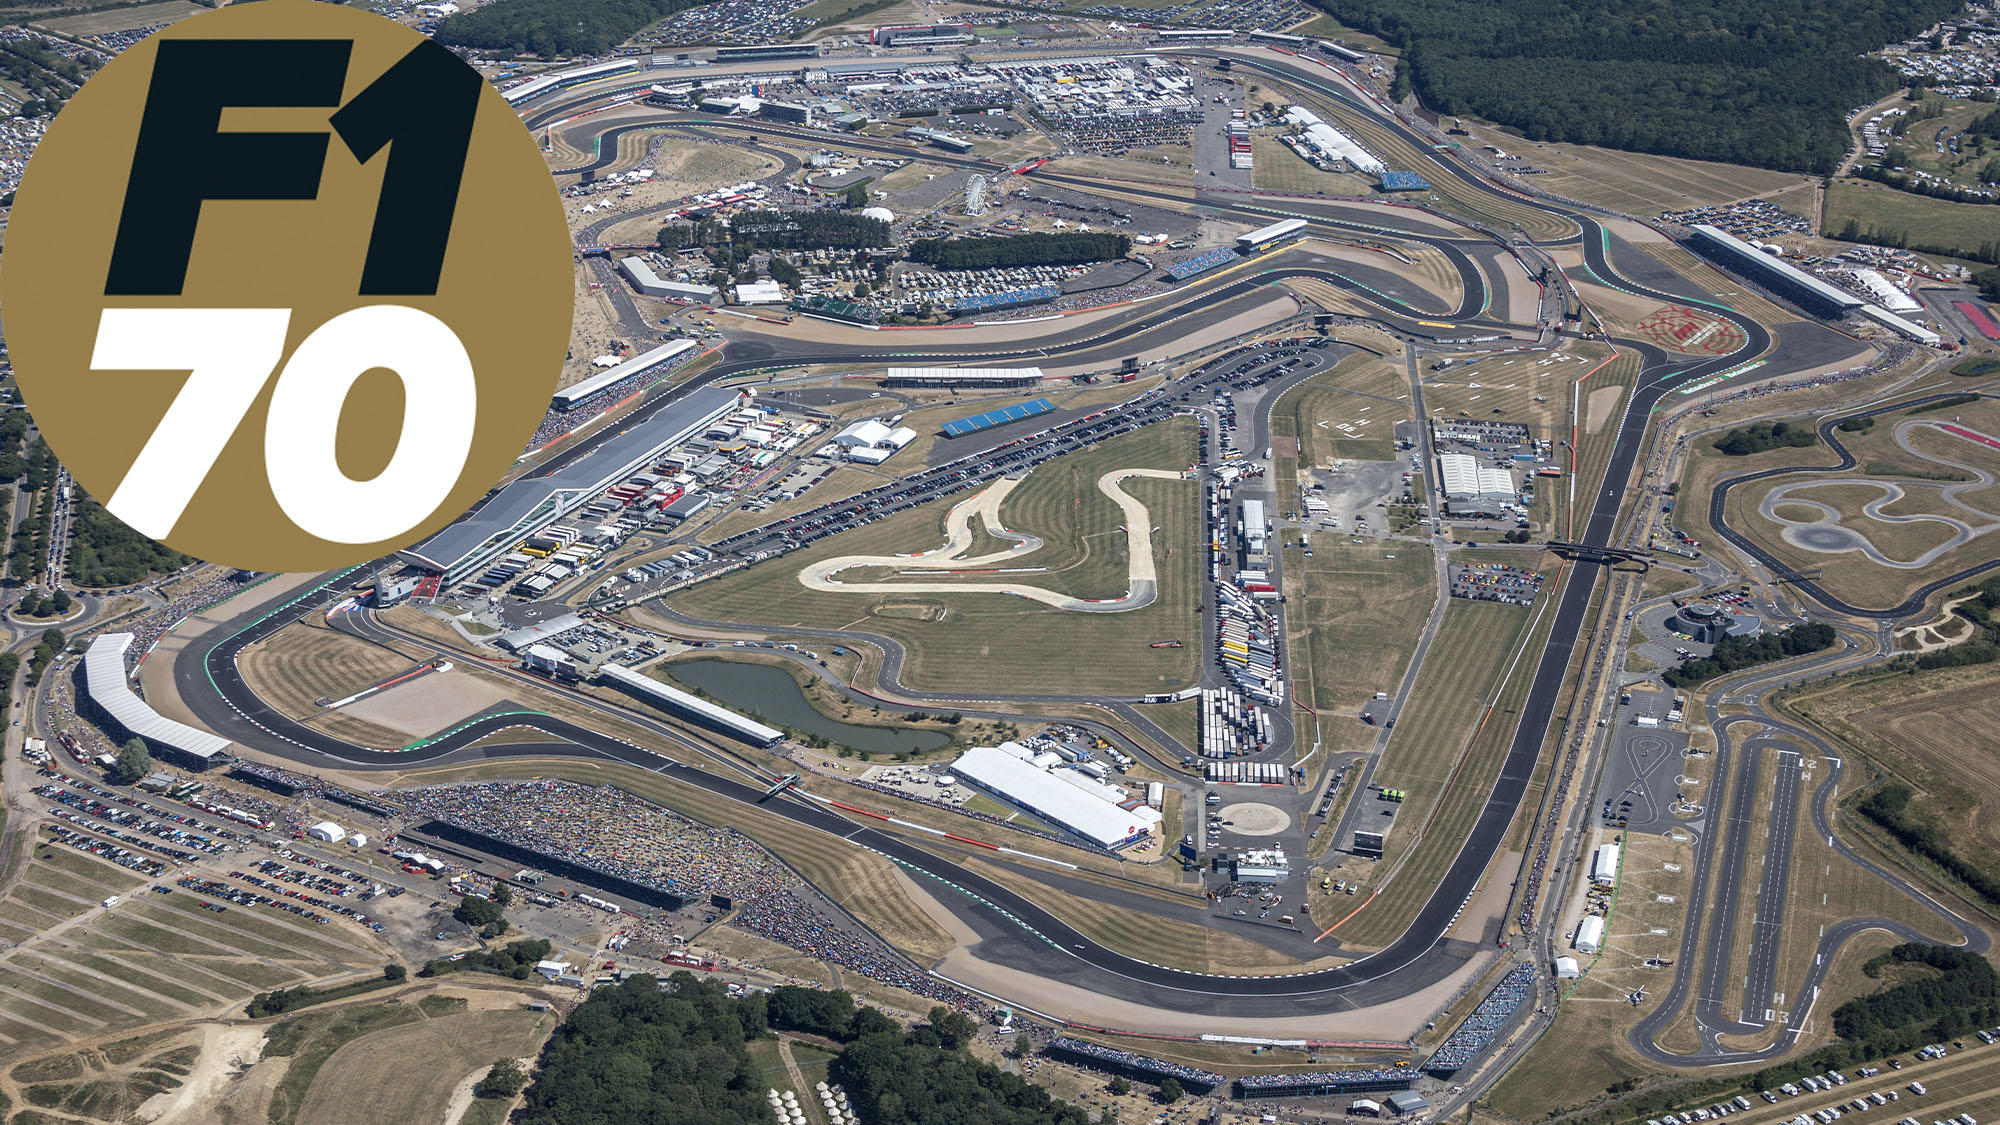 Overhead view of Silverstone during the 2018 British Grand Prix